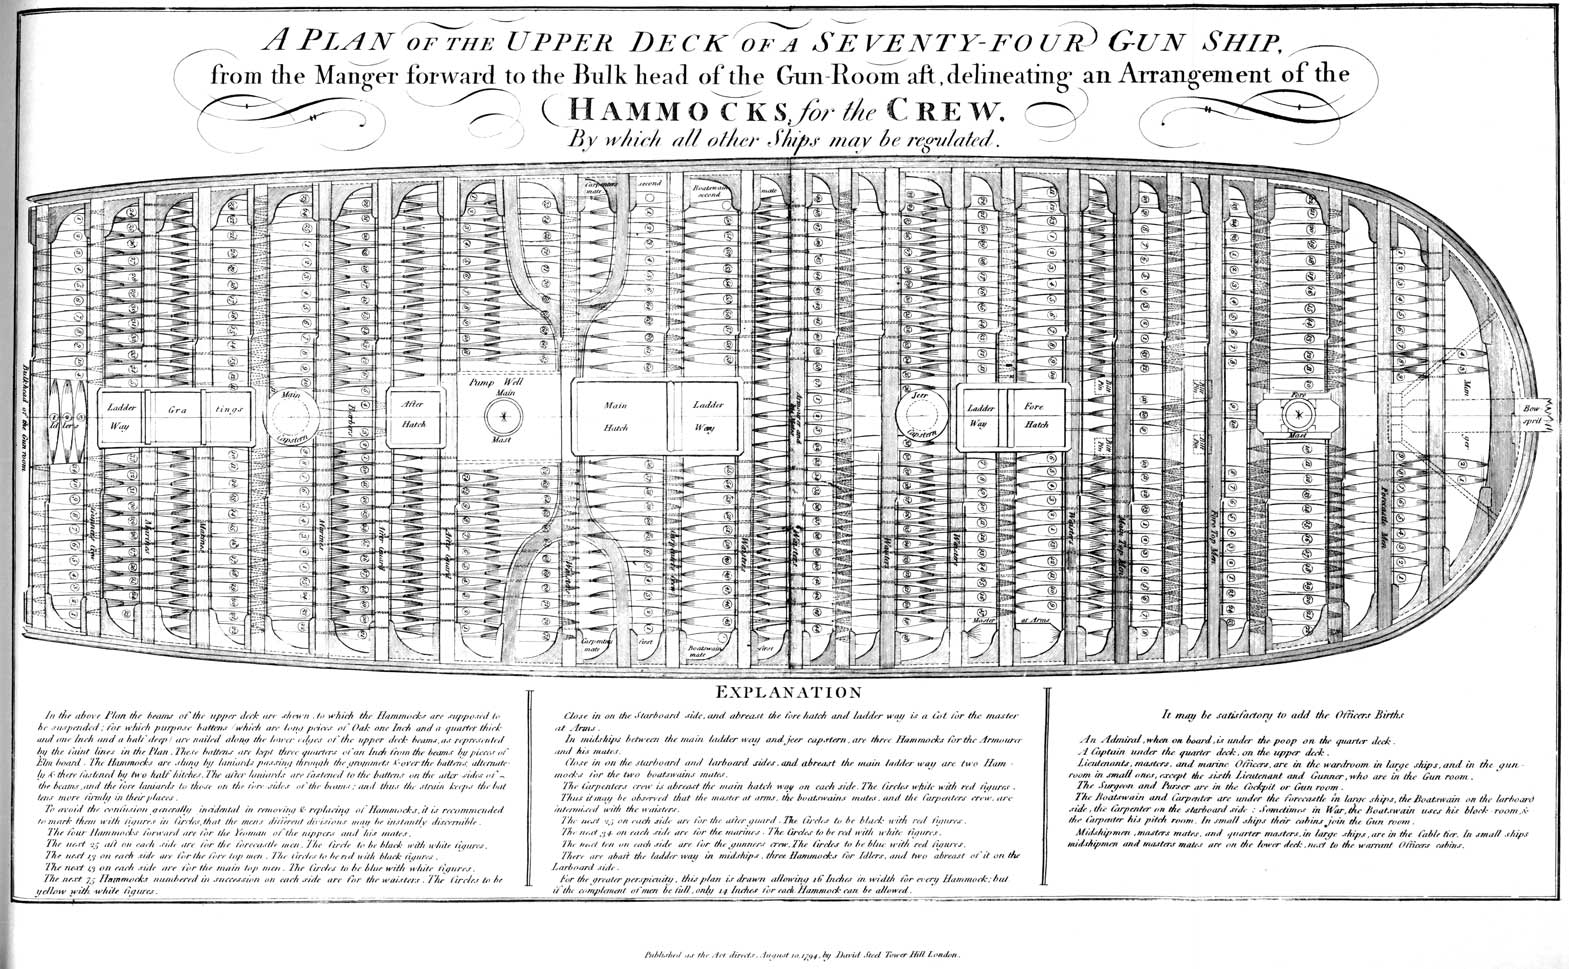 A Plan for the Upper deck Of A Seventy Four Gun Ship. Hammocks for the Crew EXPLANATION In the above Plan the beams of the upper deck are shewn to which the Hammocks are supposed to be suspended; for which purpose battens (which are long pieces of Oak on Inch and a quarter thick and one Inch and a half deep) are nailed along the lower edges of the upper deck beams, as represented by the faint lines in the Plan.  These battens are kept three quarters of an Inch from the beams by pieces of Elm board.  The Hammocks are slung by laniards passing through the grommets over the battens alternately there fastened by two half hitches.  The after laniards are fastened to the battens on the after-sides of the beams, and the fore laniards to those on the fore-sides of the beams; and thus the strain keeps the battens more firmly in their places. To avoid confusion generally incidental in removing and replacing of hammocks, it is recommended to mark them with figures in Circles, that the mens different divisions may be instantly discernible. The four Hammocks forward are for Yeoman of the nippers and his mates. The next 25 aft on each side are for the forecastle men.  The Circle to be black with white figures. The next 13 on each side are for the fore top men.  The Circles to be red with black figures. The next 13 on each side are for the main top men.  The Circles to be blue with white figures. The next Hammocks numbered in succession on each side are for the waisters.  The Circles to be yellow with white figures.  Close in on the Starboard side, and abreast the fore hatch and ladder way is a Cot for the master of Arms. In midships between the main ladder way and the jeer capstern, are three Hammocks for the Armourer and his mates. Close in on the starboard and larboard sides, and abreast the main ladder way are two Hammocks for the two boatswains mates. The Carpenters crew is abreast the main hatch way on each side.  The Circles white with red figures. Thus it may be observed that the master of arms, the boatswains mates and the Carpenters crew are intermixed with the waisters. The next 25 on each side are for the after guard.  The Circles to be black with red figures. The next 34 on each side are for marines. The Circles to be red with white figures. The next ten on each side are for gunners crew. The Circles to be blue with red figures. There are abaft the ladder way in midships, the Hammocks for Idlers, and two abreast of it on the Larboard side. For the greater perspicuity, this plan is drawn allowing 16 Inches in width for every Hammock; but if the complement of men be full, only 14 Inches for each Hammock can be allowed.  It may be satisfactory to add the Officers Births An Admiral, when on board, is under the poop on the quarter deck. A Captain under the quarter deck, on the upper deck. Lieutenants, masters and marine Officers, are in the wardroom in large ships, and in the gun room on small ones, except the sixth Lieutenant and Gunner, who are in the Gun room. The Surgeon and Purser are in the Cockpit or Gun room. The Boatswain and Carpenter are under the forecastle in large ships, the Boatswain on the larboard side, the Carpenter on the starboard side: Sometimes in War, the Boatswain uses his block room and the Carpenter his pitch room.  In small ships their cabins join the Tun room. Midshipmen, masters mates, and quarter masters, in large ships, are in the Cable tier. In small ships midshipmen and masters mates are on the lower deck, next to the warrant Officers cabins.